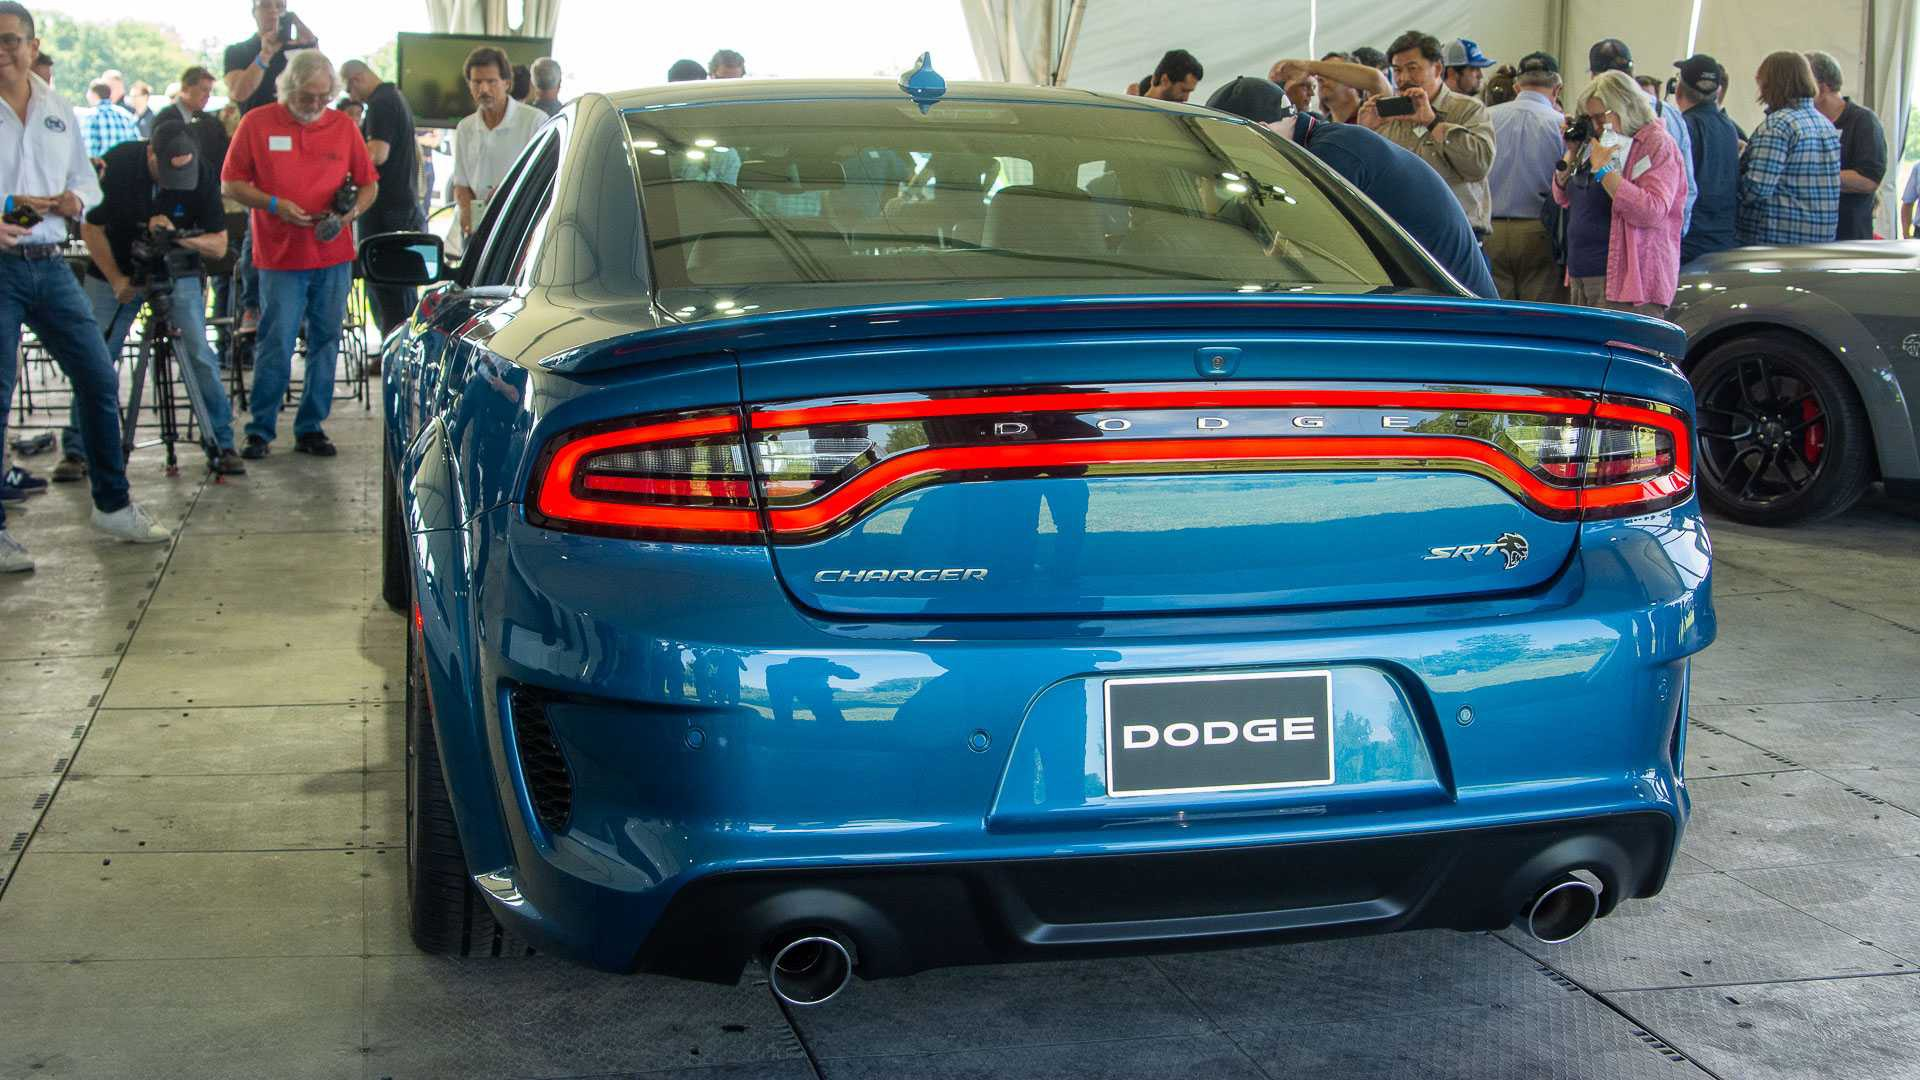 2020 dodge charger srt hellcat widebody and scat pack widebody (3)